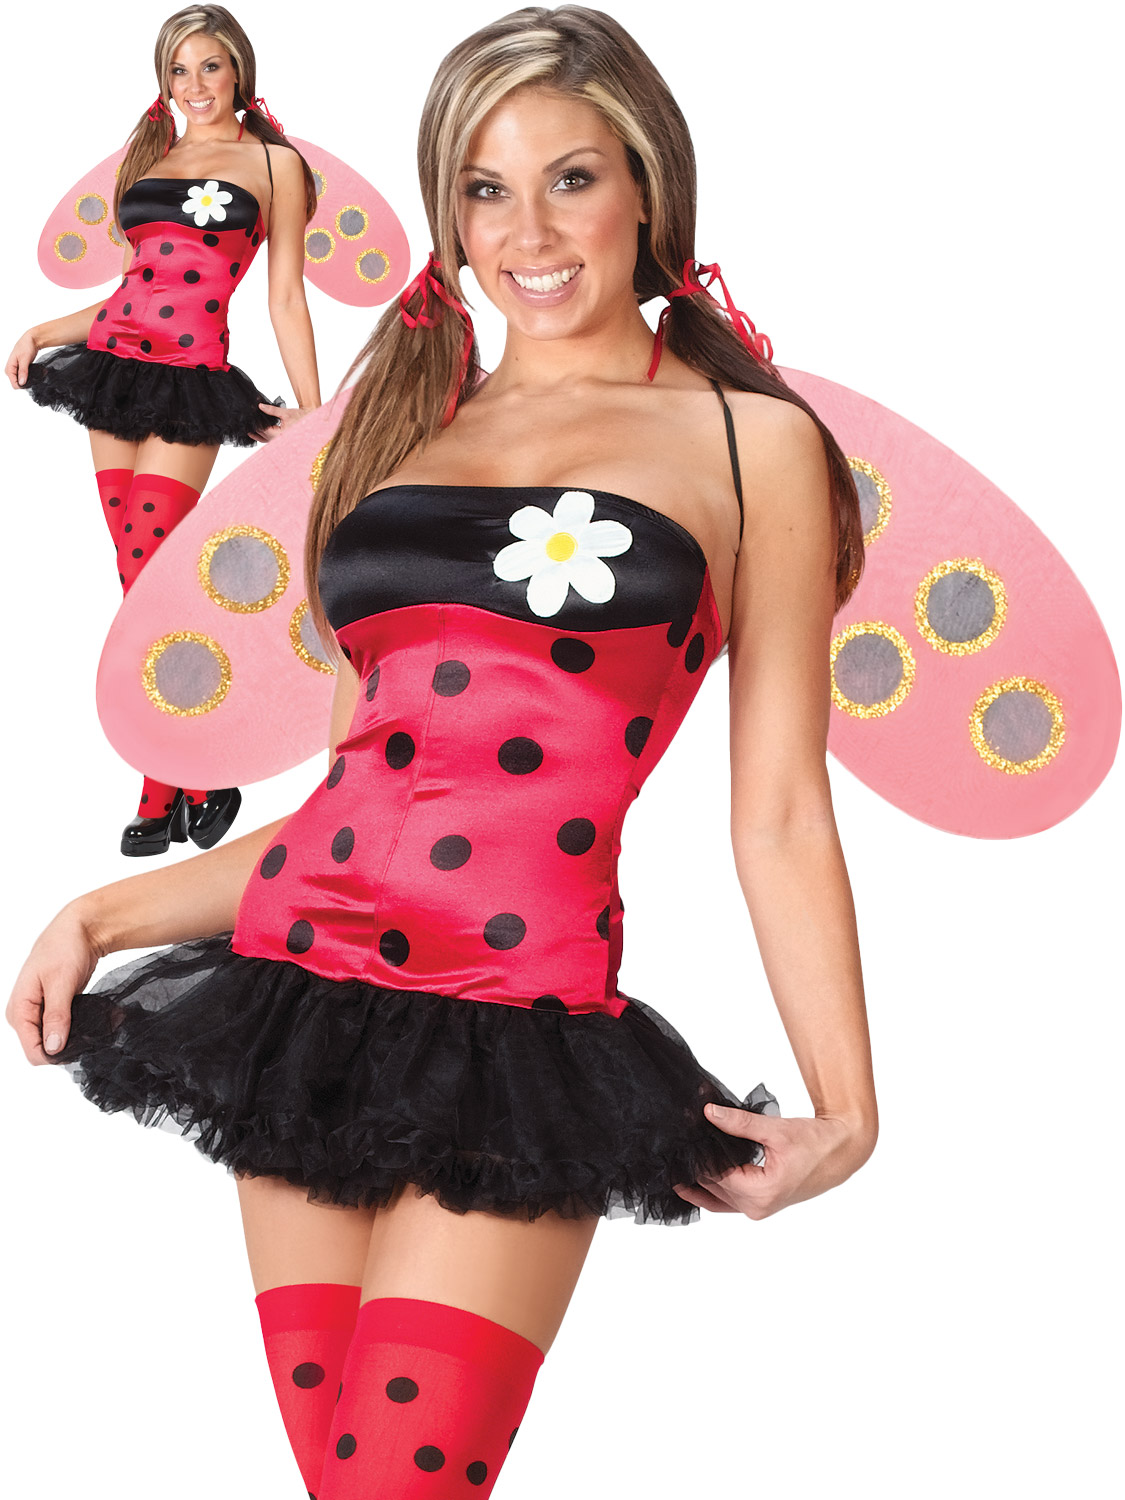 Ladies leggy ladybird costume adult sexy insect fancy dress women transform yourself into a sexy ladybug with this ladies ladybird costume its perfect if youre going to an animal insect themed party solutioingenieria Images